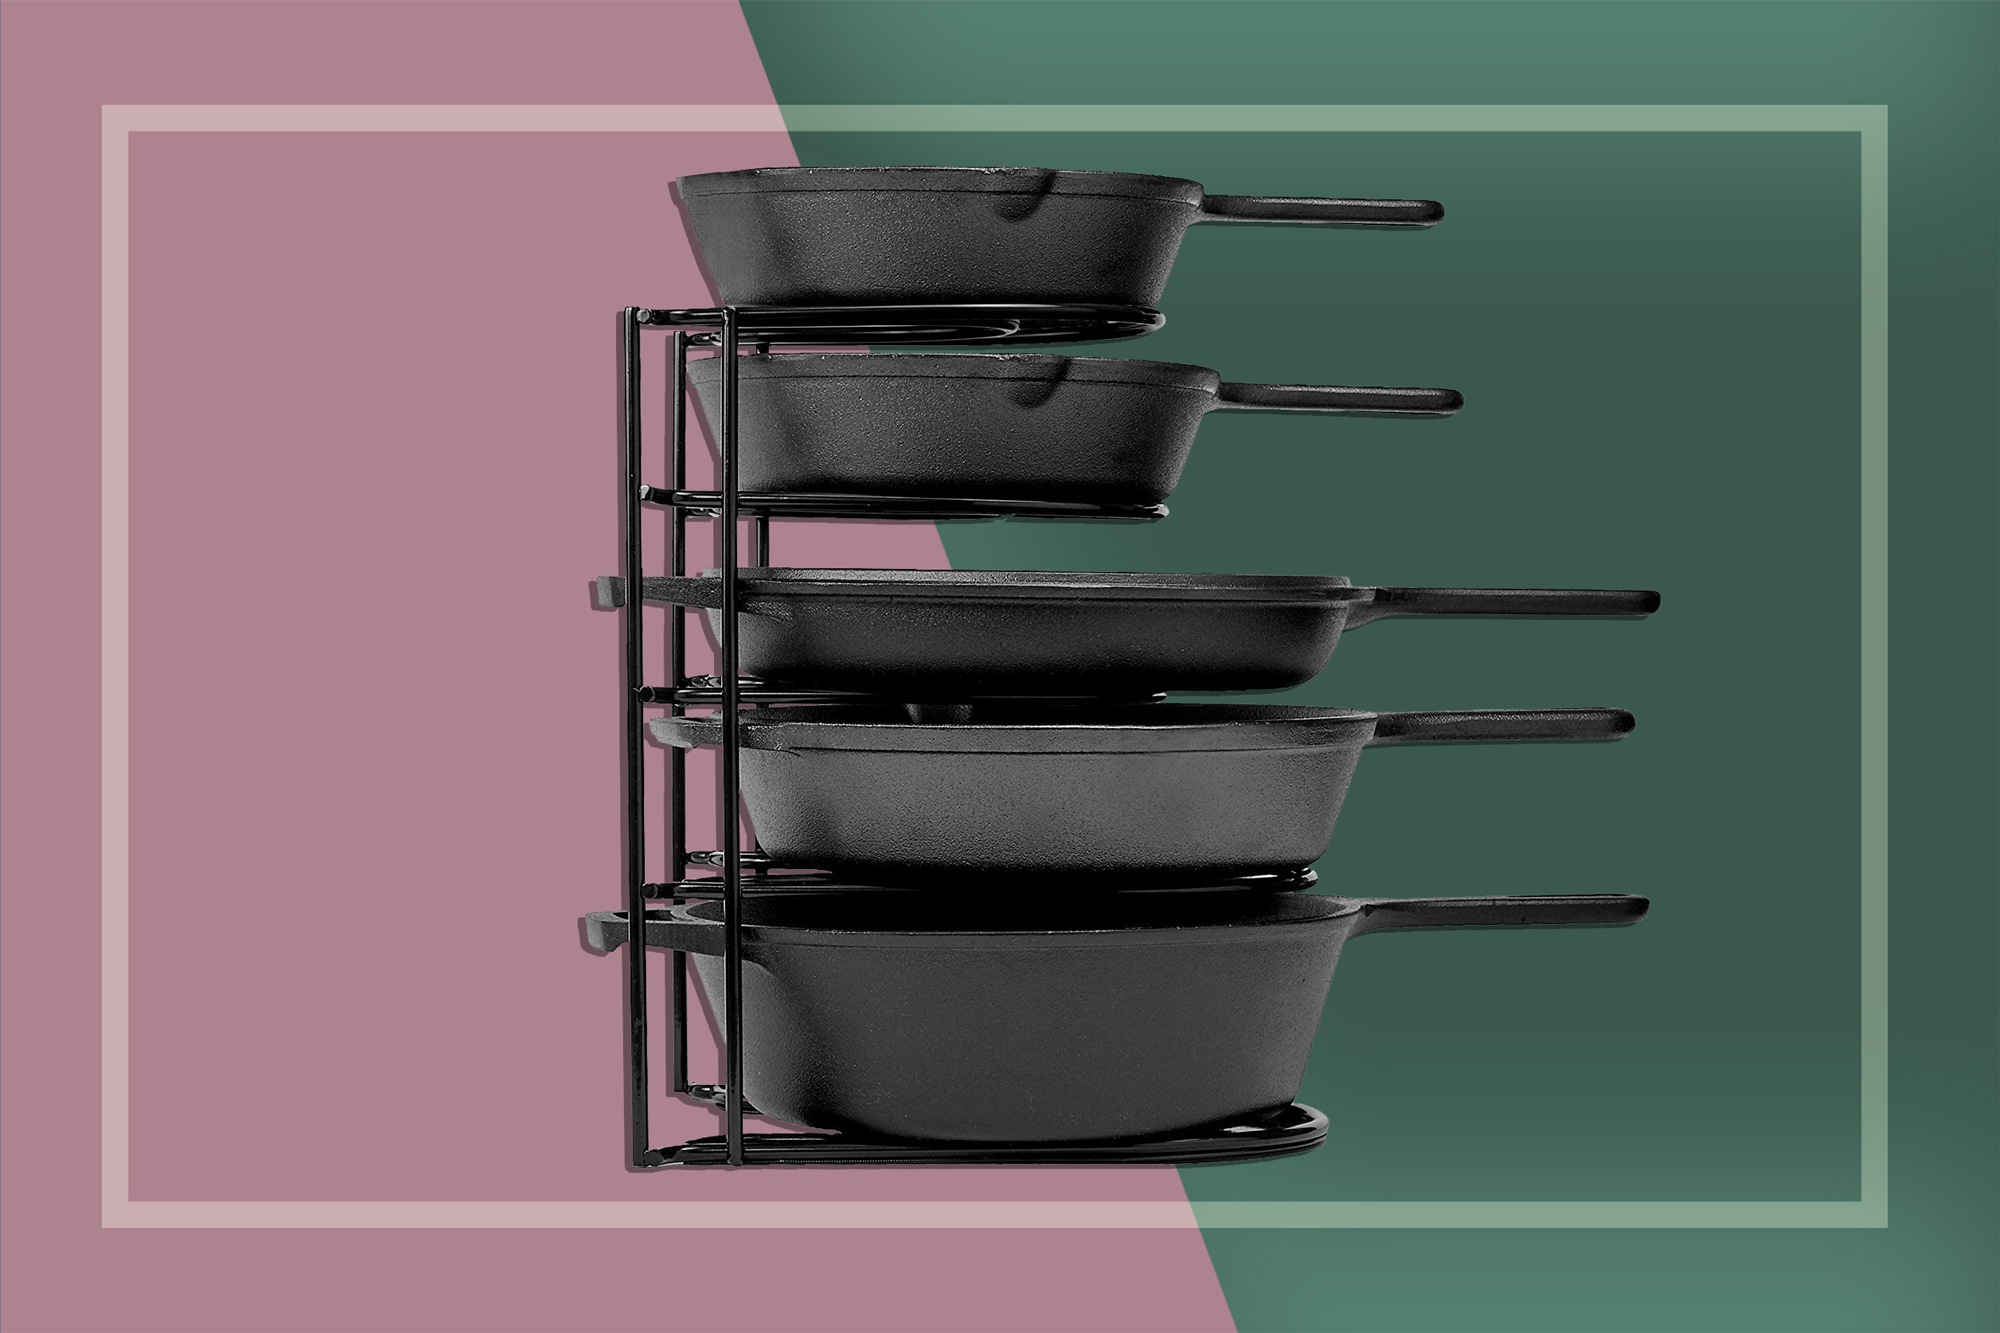 This Heavy-Duty Organizer Is the Best Way to Store Your Beloved Cast Iron Pans